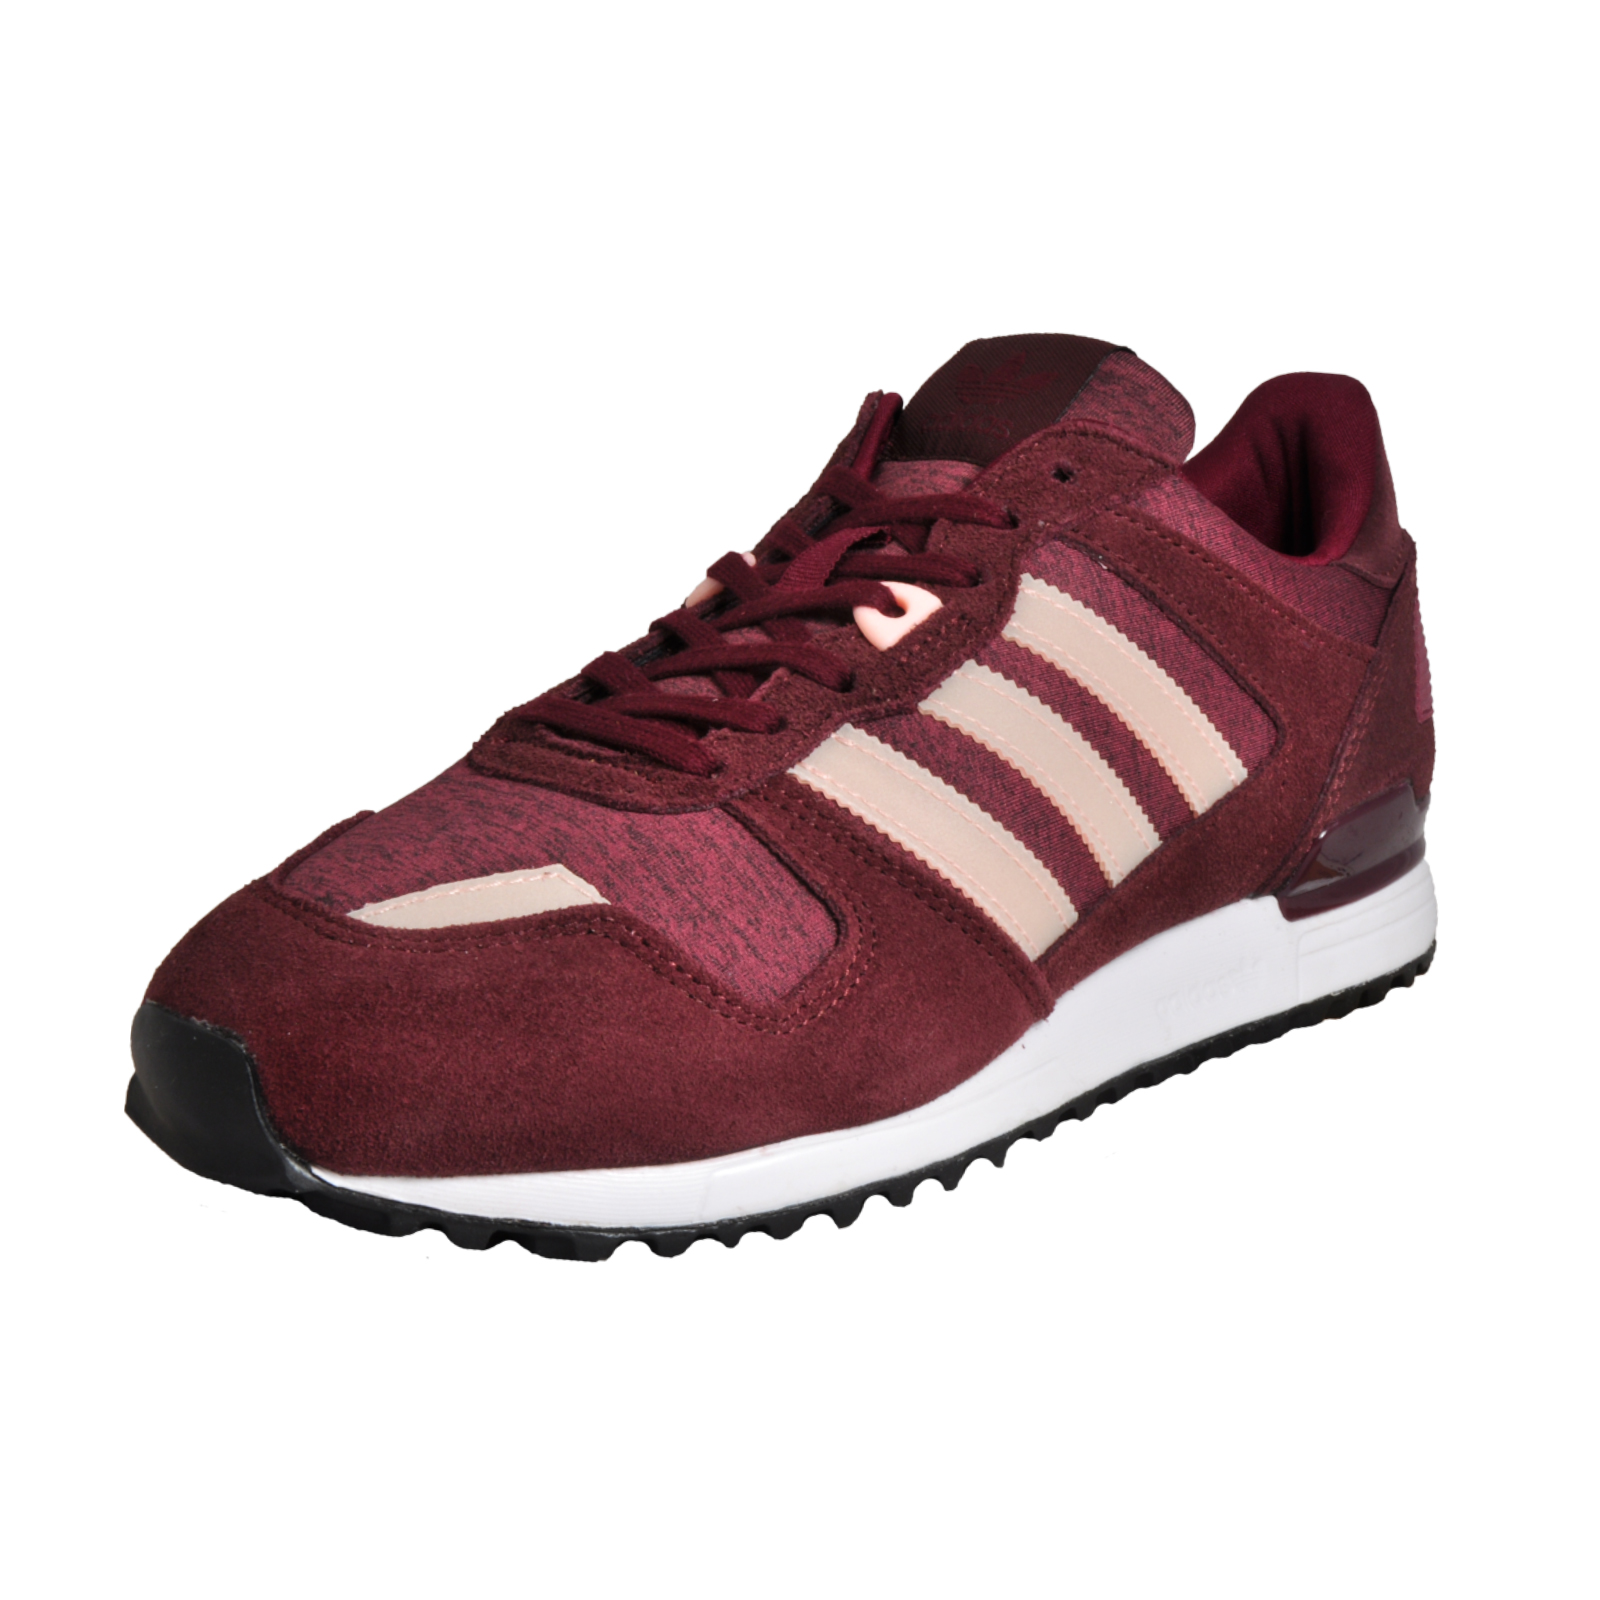 492dfe362f5c2 Details about Adidas Originals ZX 700 Womens Ladies Classic Casual Fitness  Fashion Trainers Pu